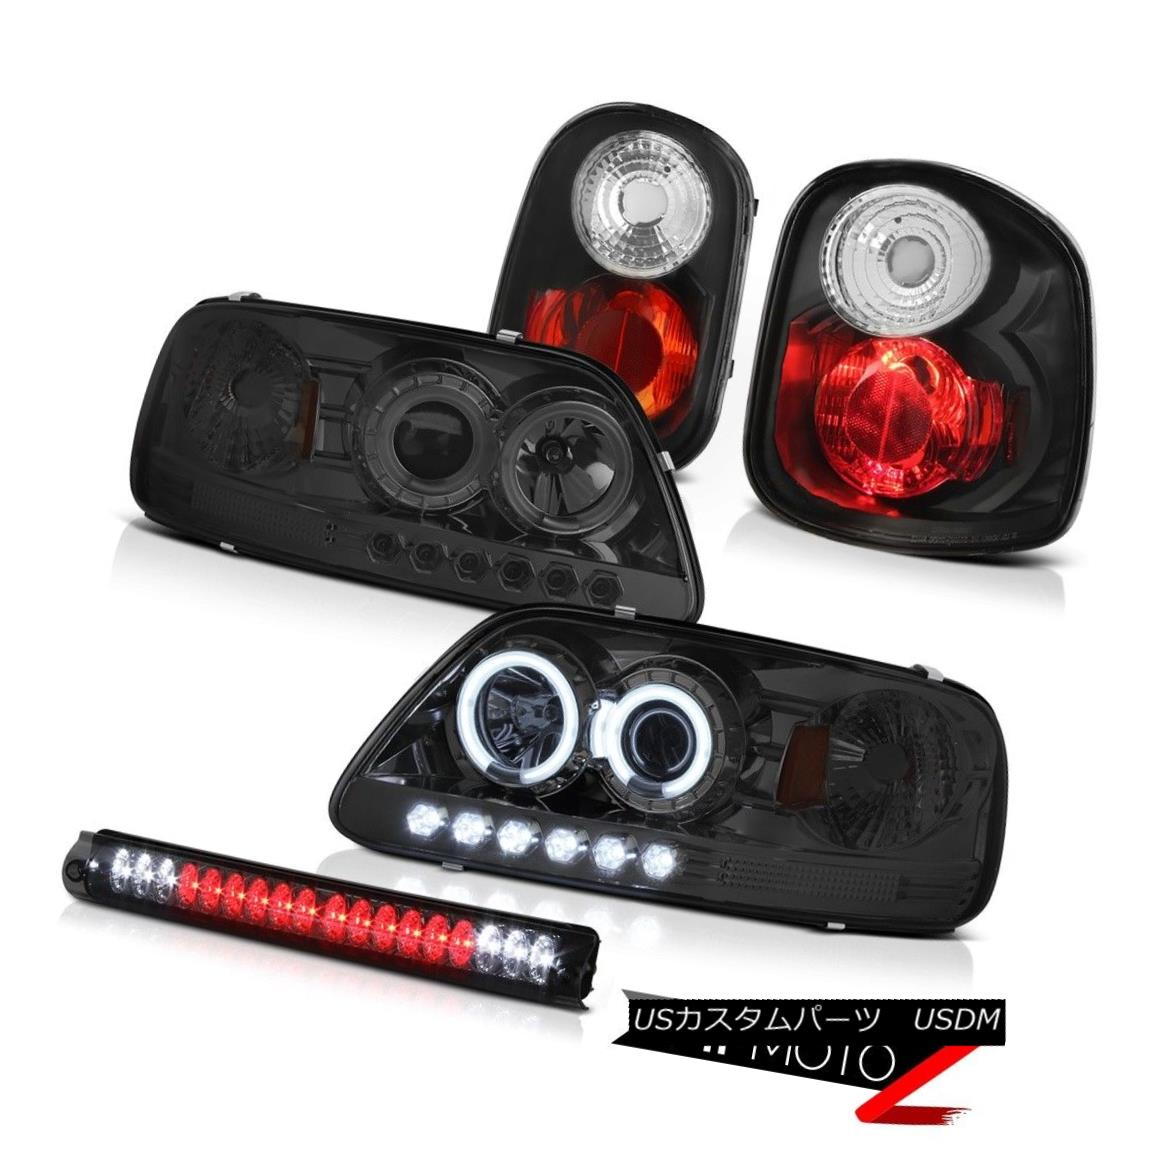 ヘッドライト Brightest Halo Ring Headlights Black Taillamps LED 3rd 97-00 F150 Flareside 4.6L 最も明るいHaloリングヘッドライトブラックTaillamps LED 3rd 97-00 F150 Flareside 4.6L